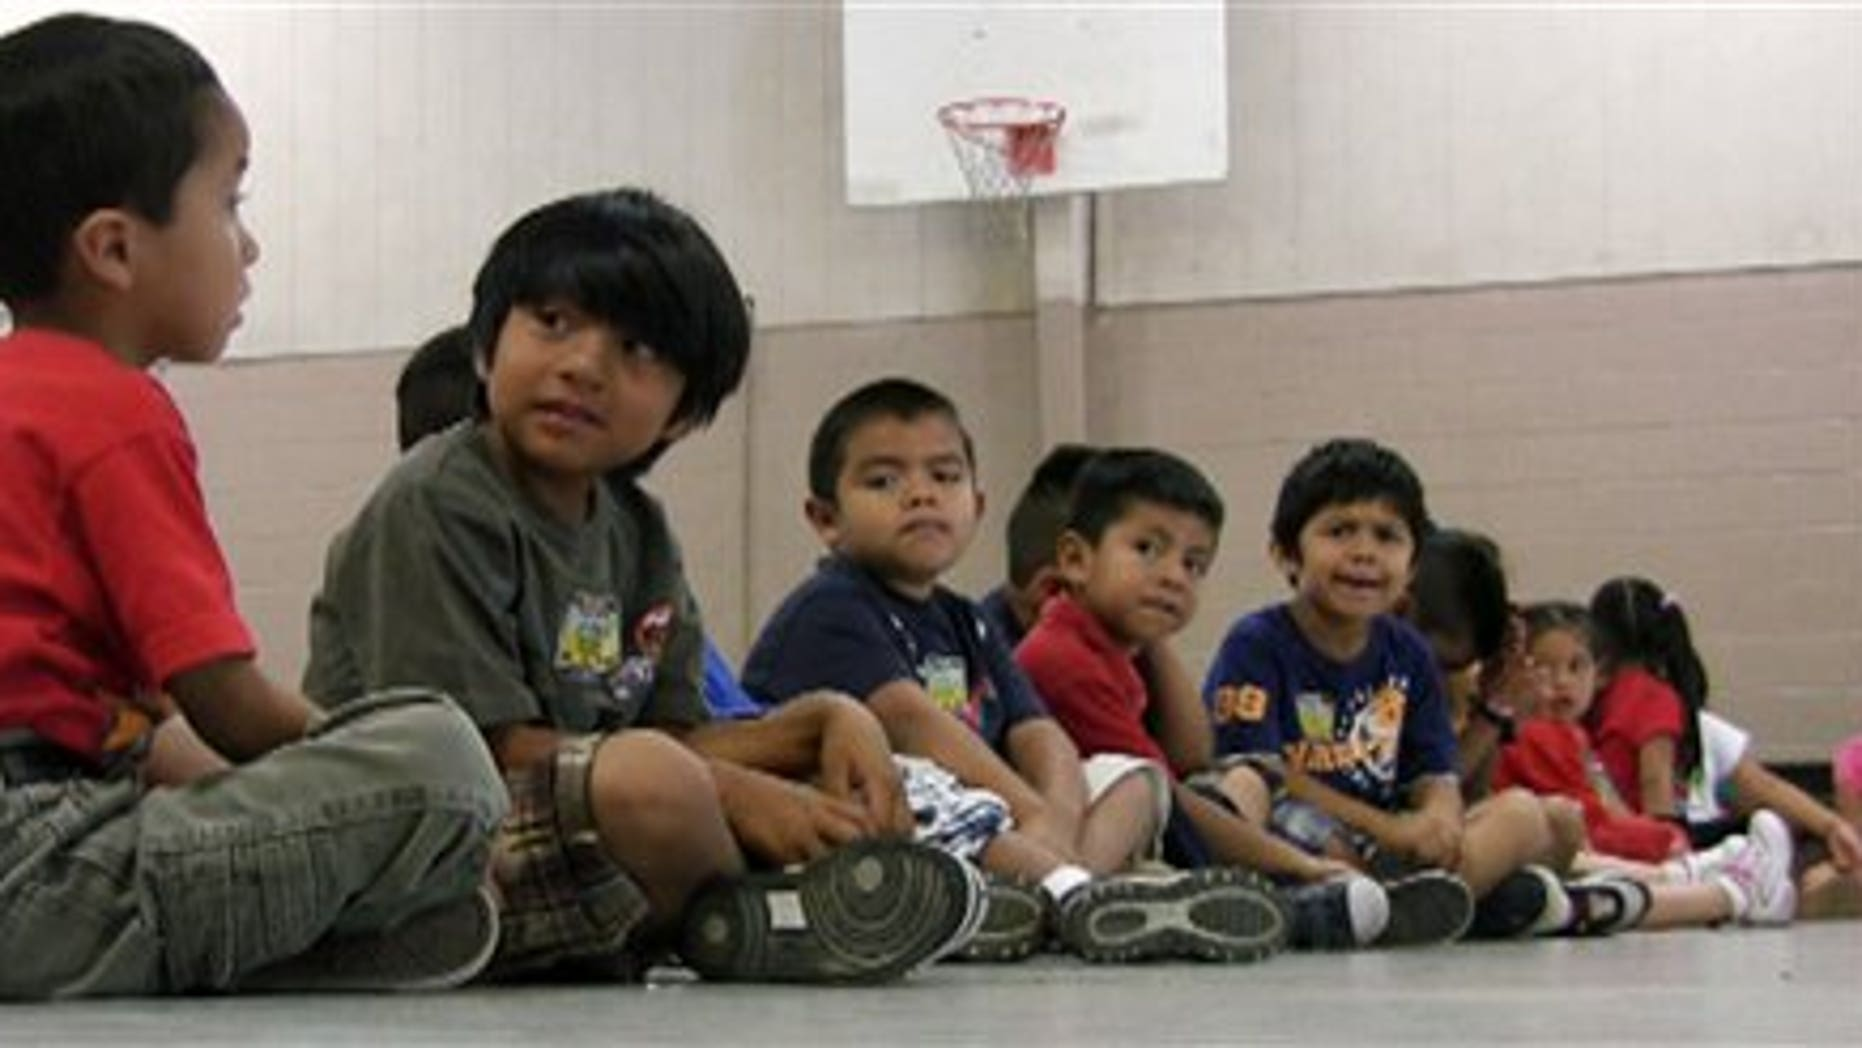 August 17: Students sit in the gym at Crossville Elmentary School in Crossville, Alabama. Despite being in an almost all-white town, the school's enrollment is about 65 percent Hispanic. Both English- and Spanish-speaking residents say they are awaiting the outcome of a federal court hearing on Alabama's new law cracking down on illegal immigration.